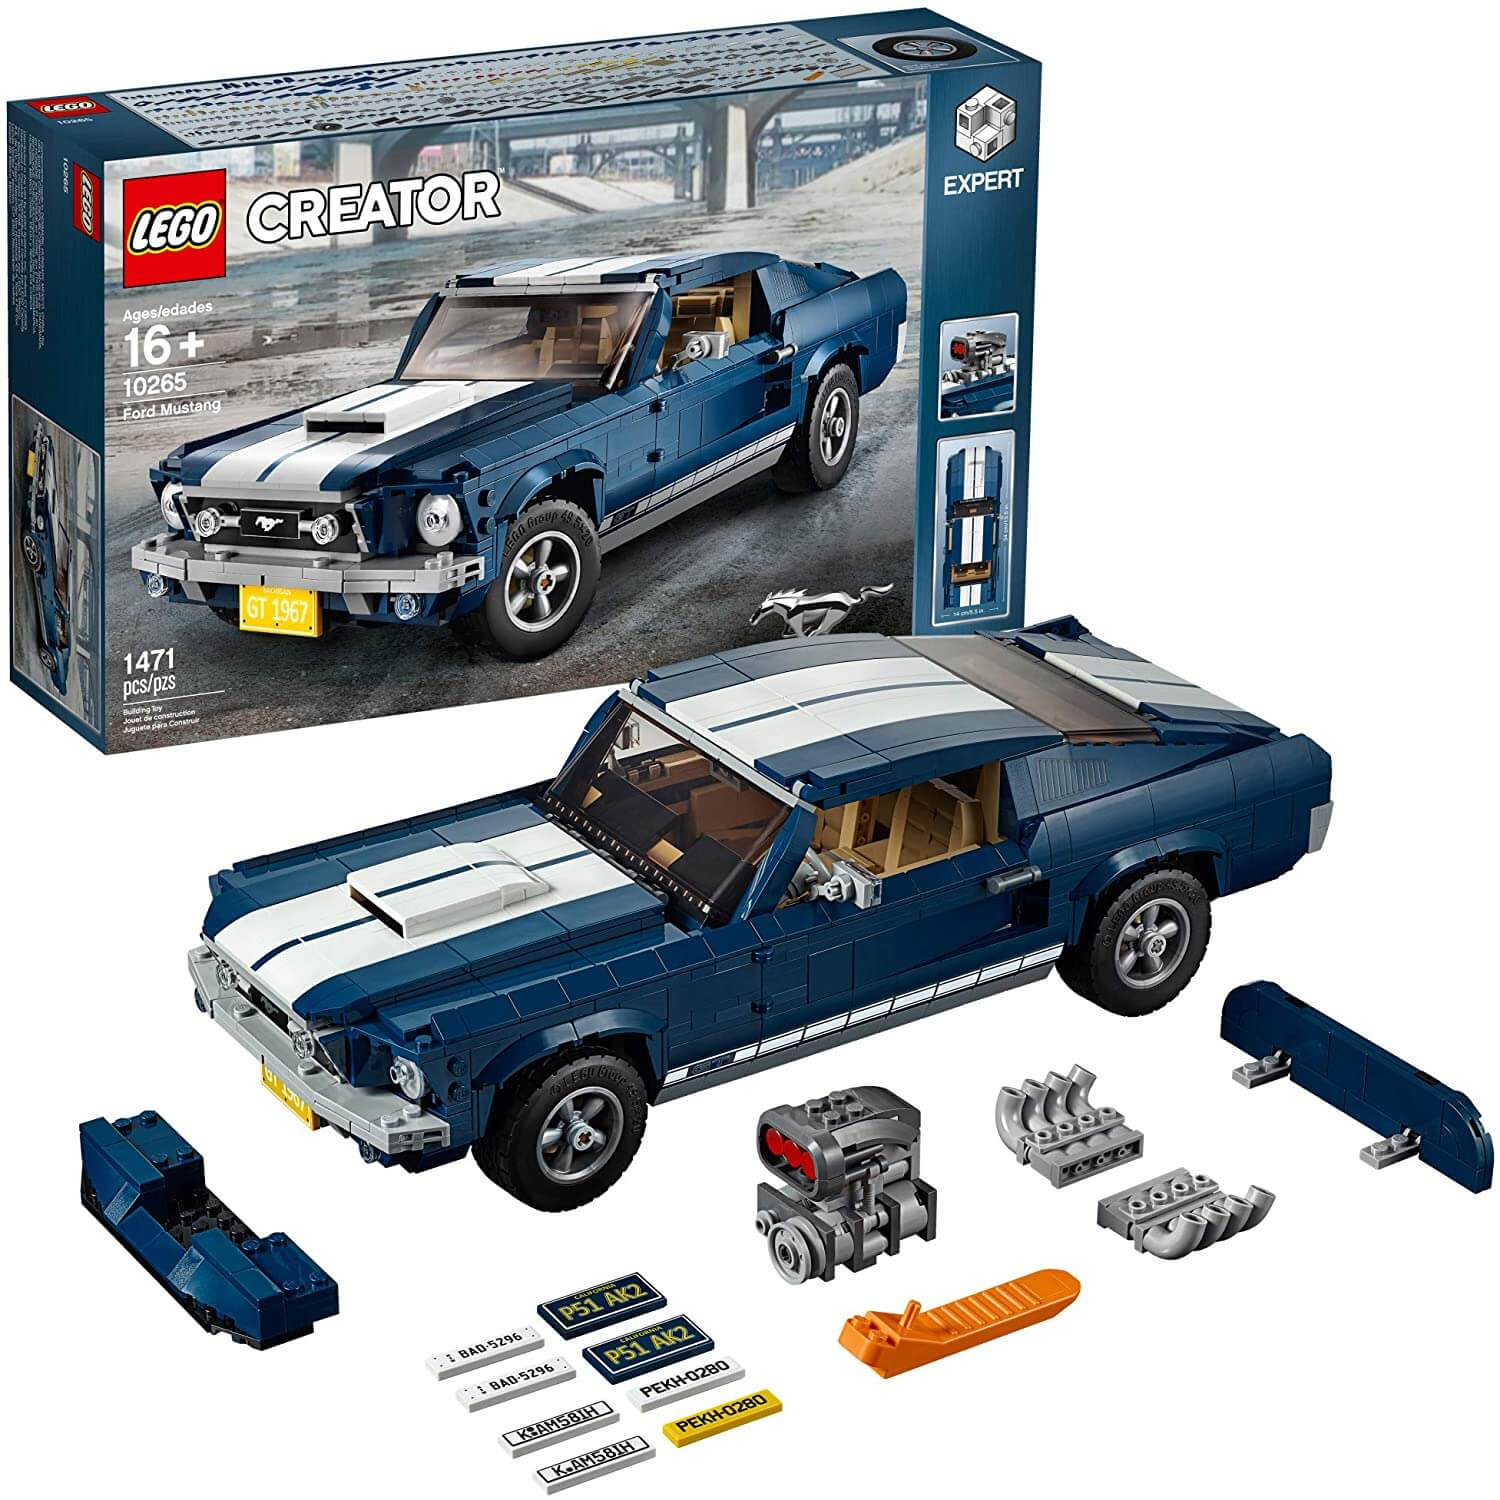 Modell auta Ford Mustang z Lego Creator